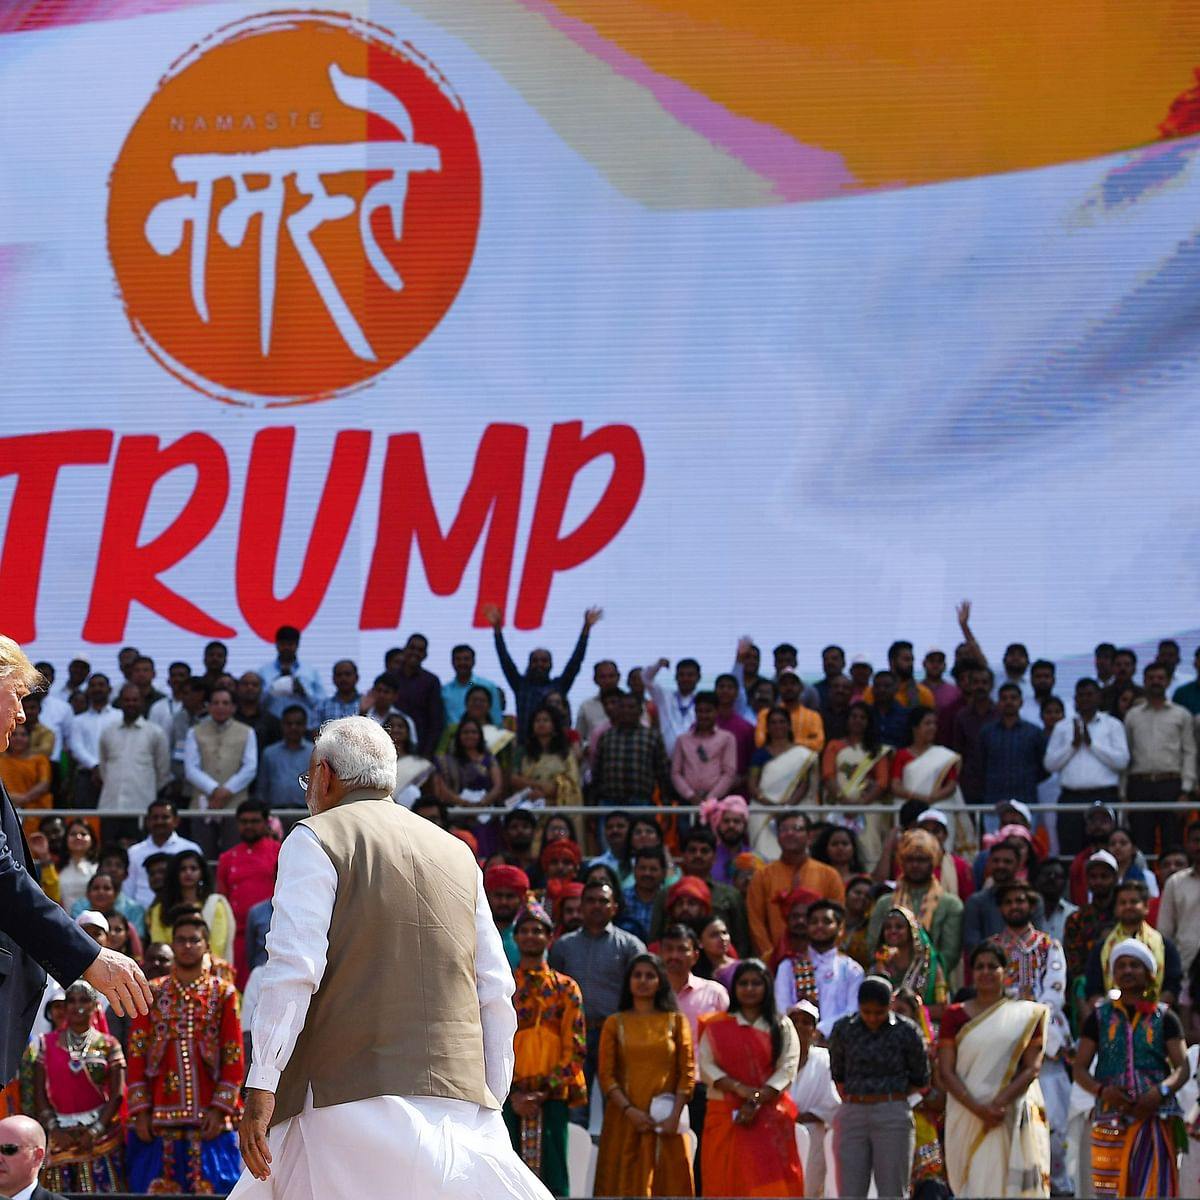 Madhya Pradesh: 'Namaste Trump', toppling MP govt delayed lockdown, claims Opposition